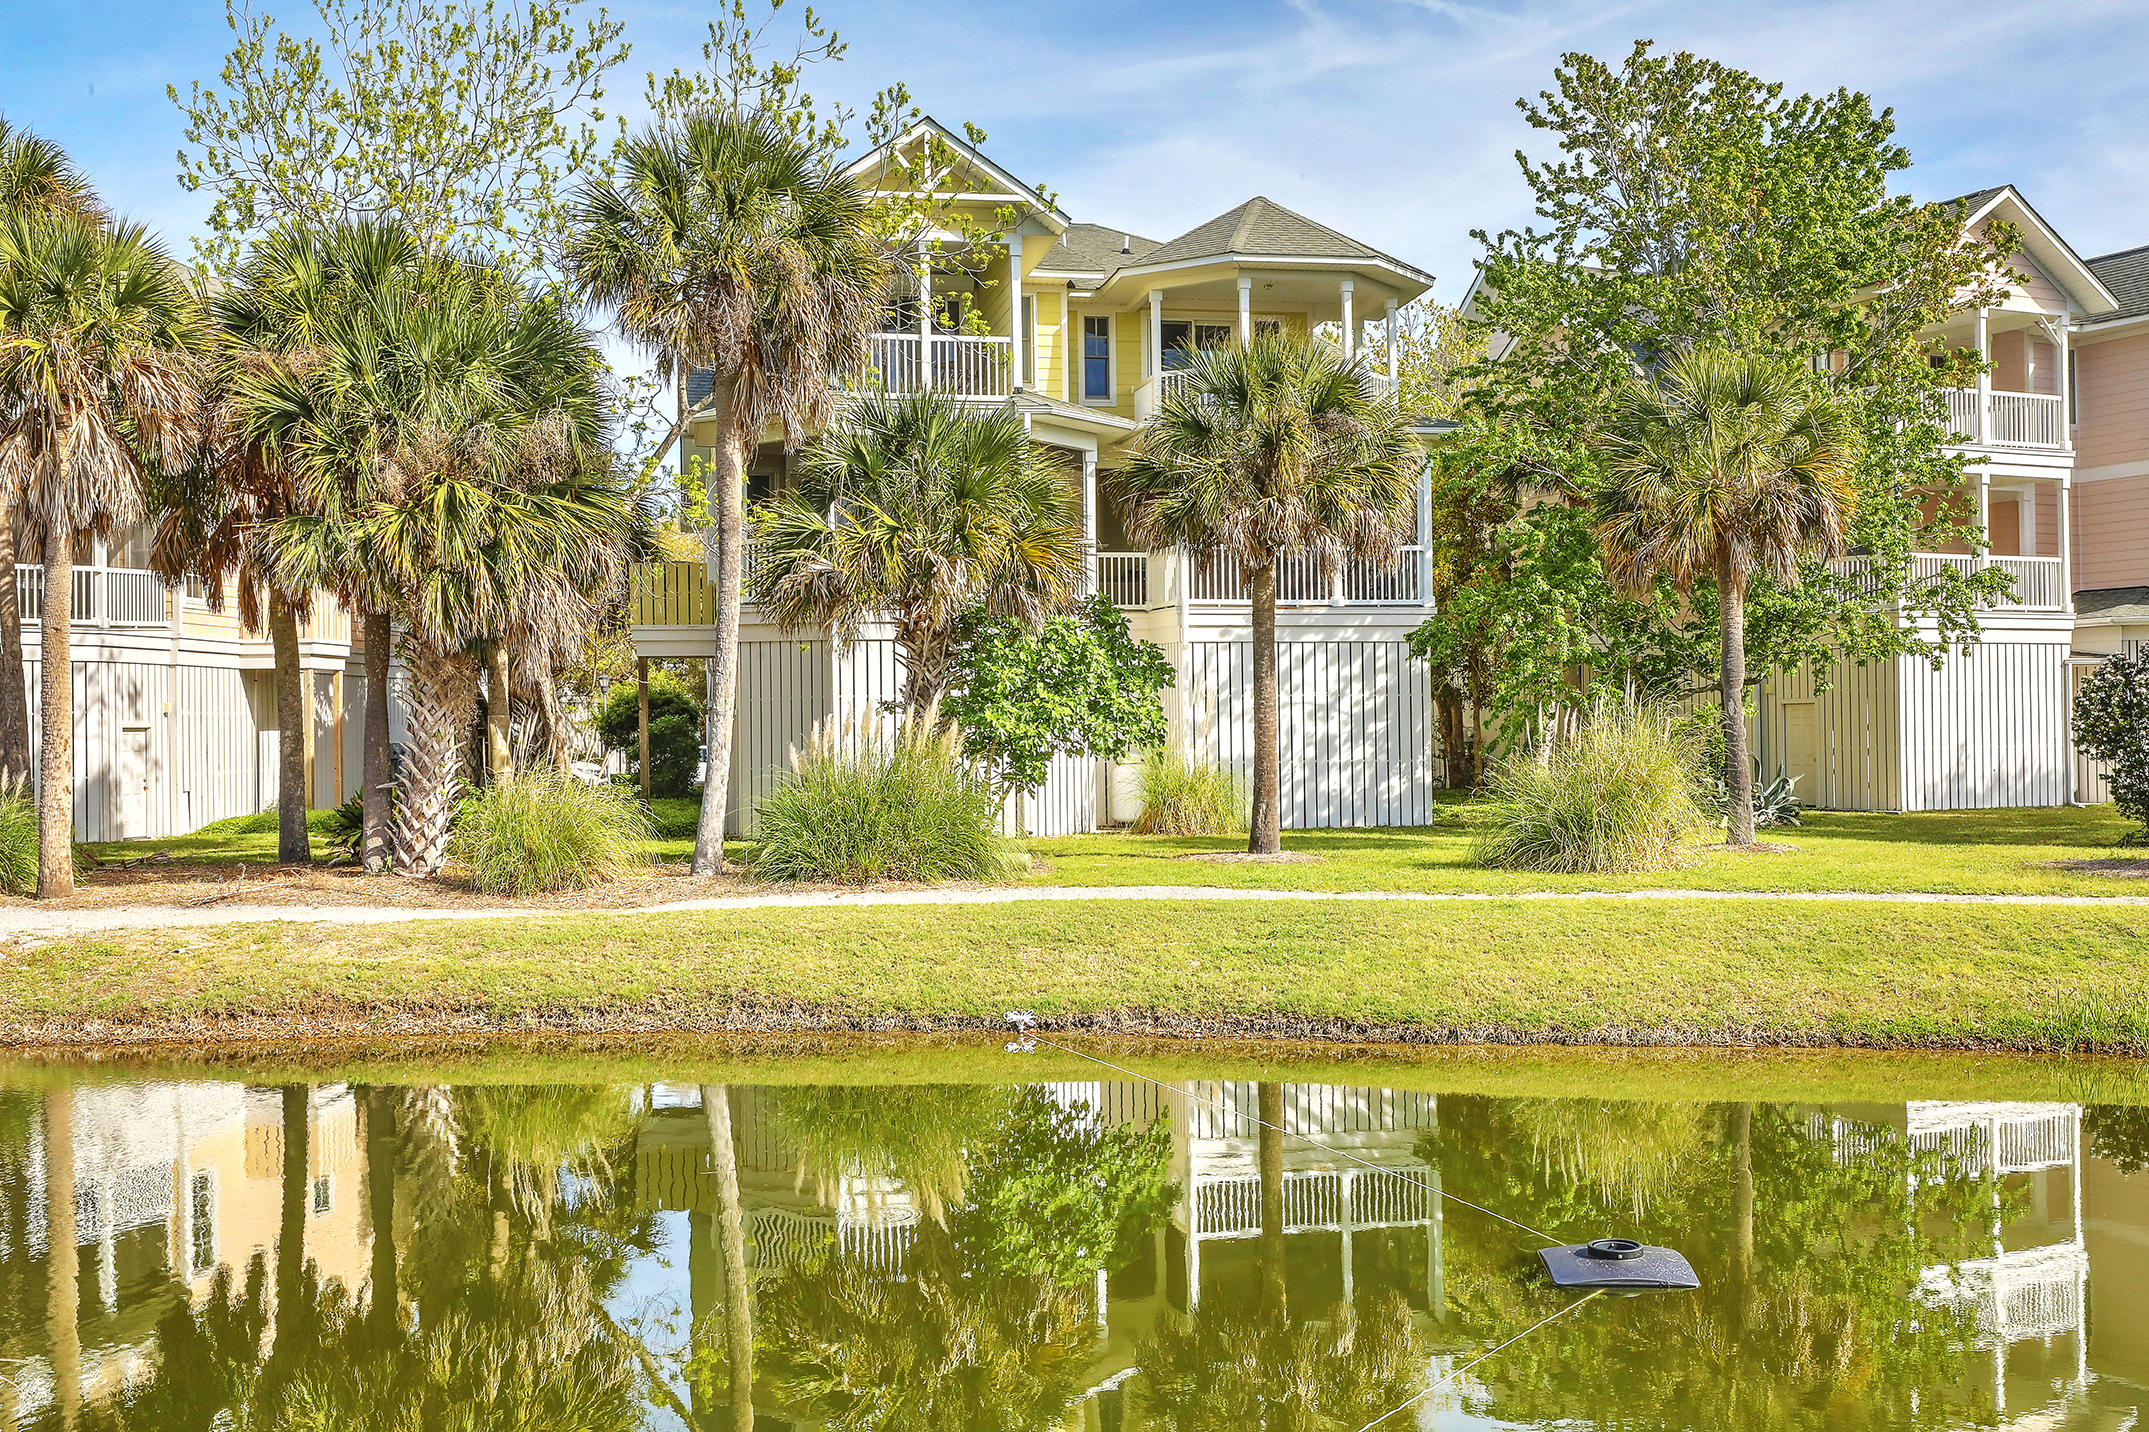 Palmetto Pointe Homes For Sale - 1631 Folly Creek, Charleston, SC - 14